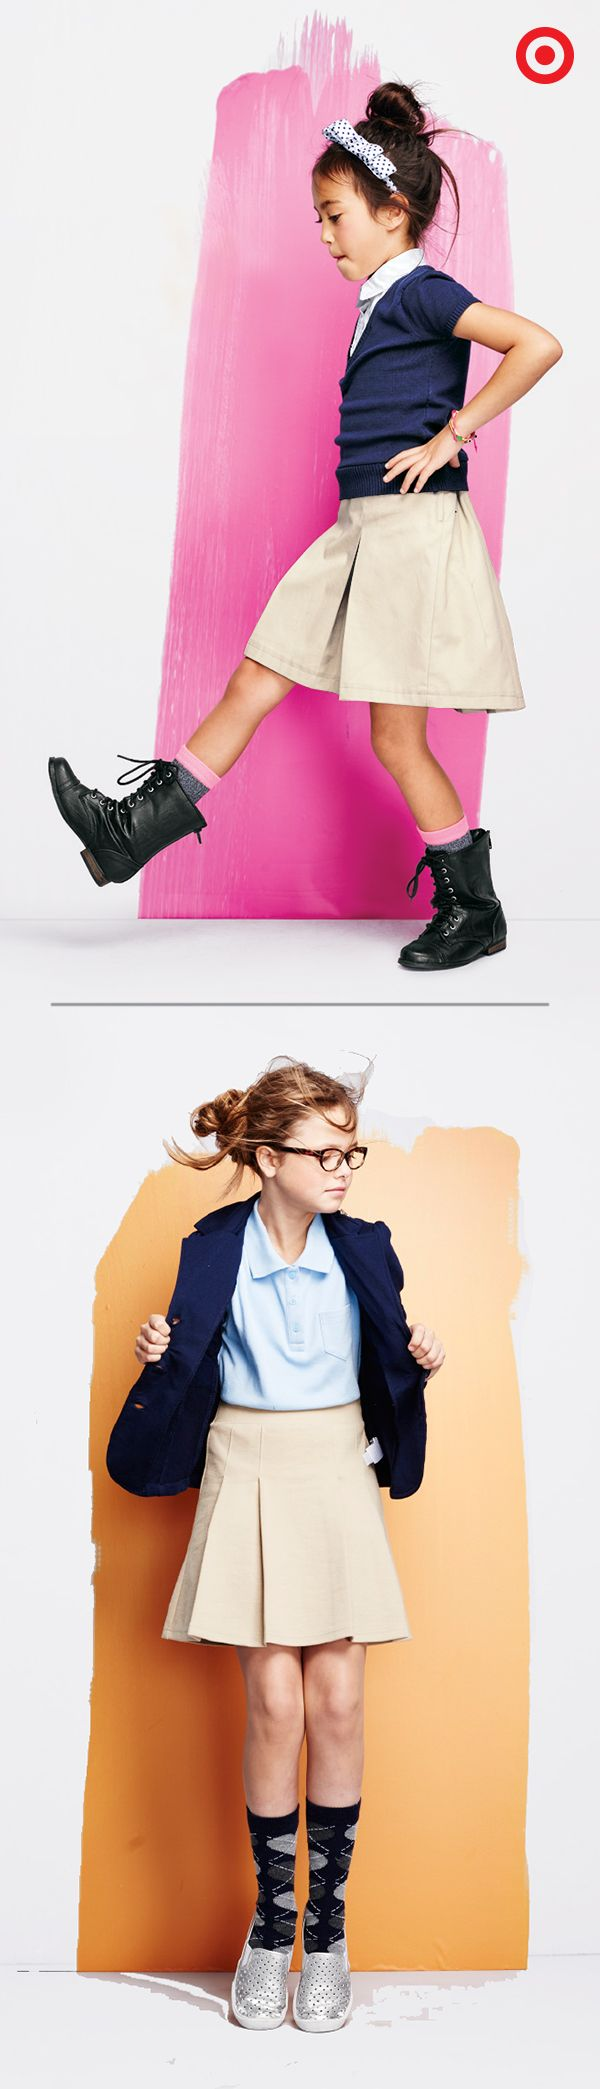 Uniforms make getting dressed for school extra easy. Start with tucked in polos and classic khaki skirts. Then add a playful pair or socks and shoes. Find all kinds of colors and styles to set the girls up for a successful and stylish year.